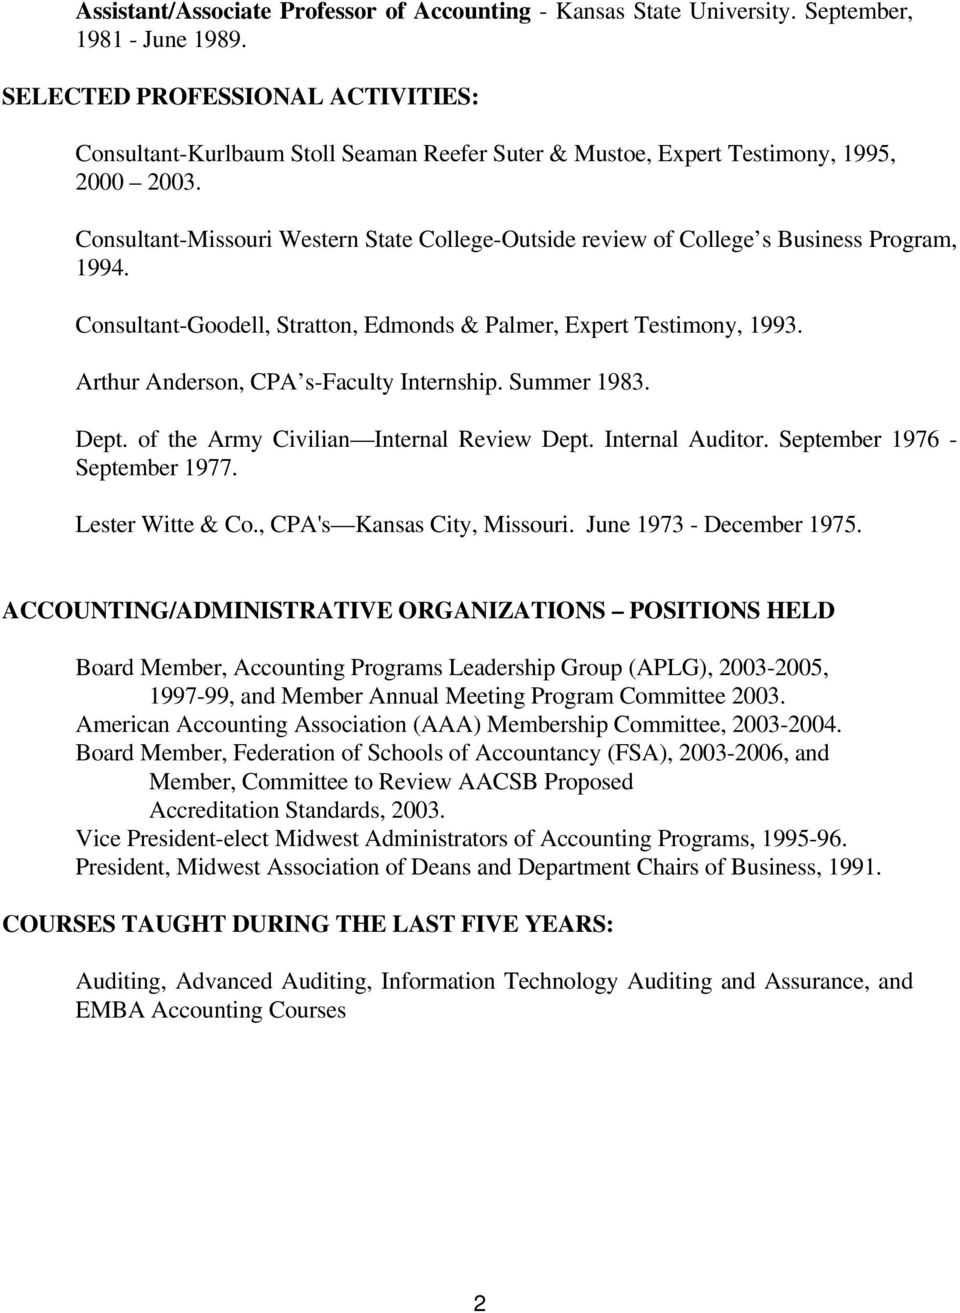 Consultant-Missouri Western State College-Outside review of College s Business Program, 1994. Consultant-Goodell, Stratton, Edmonds & Palmer, Expert Testimony, 1993.